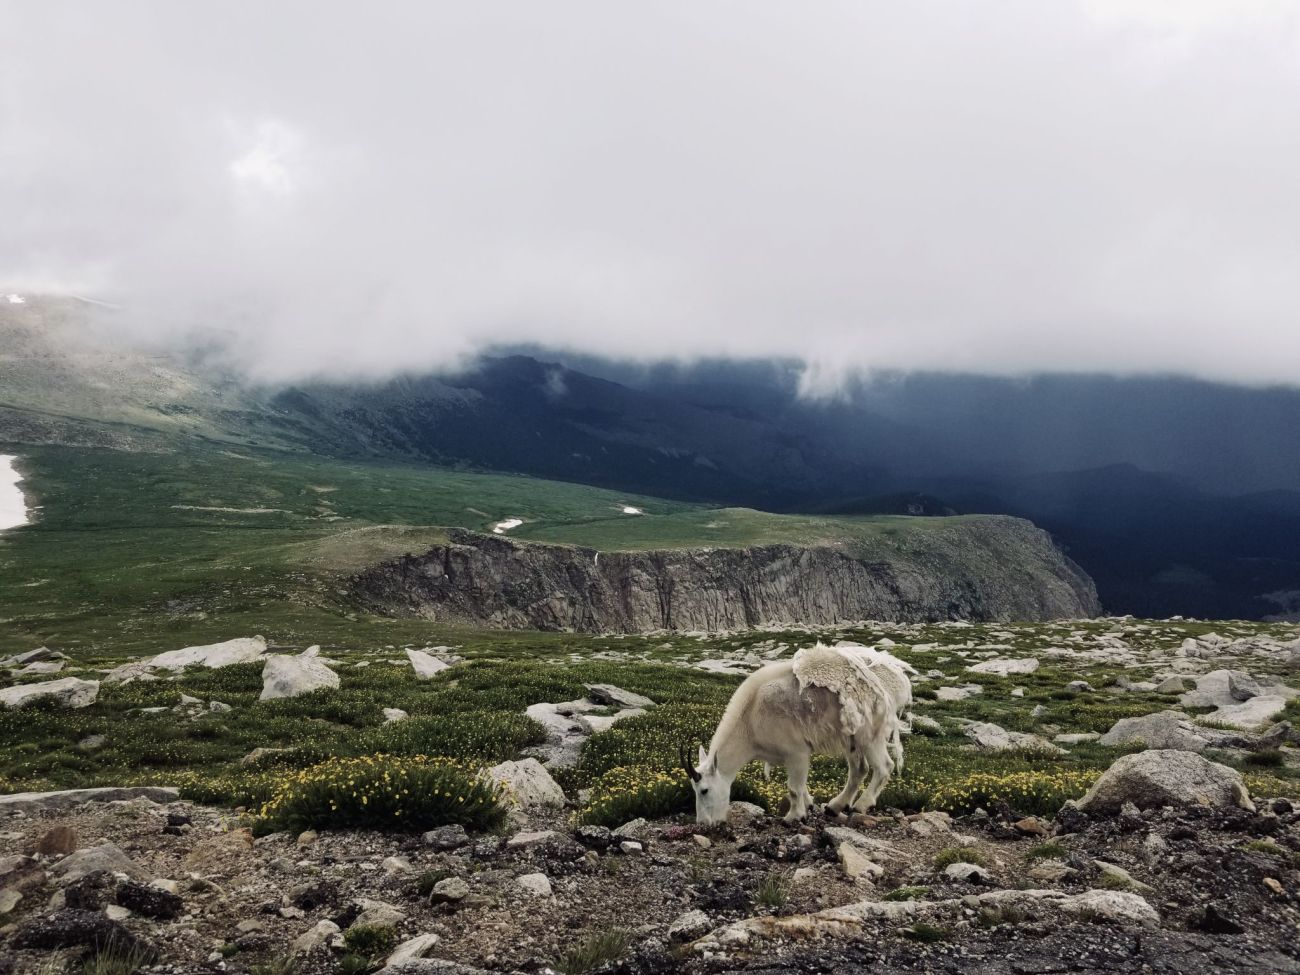 Mountain Goat on Mount Evans